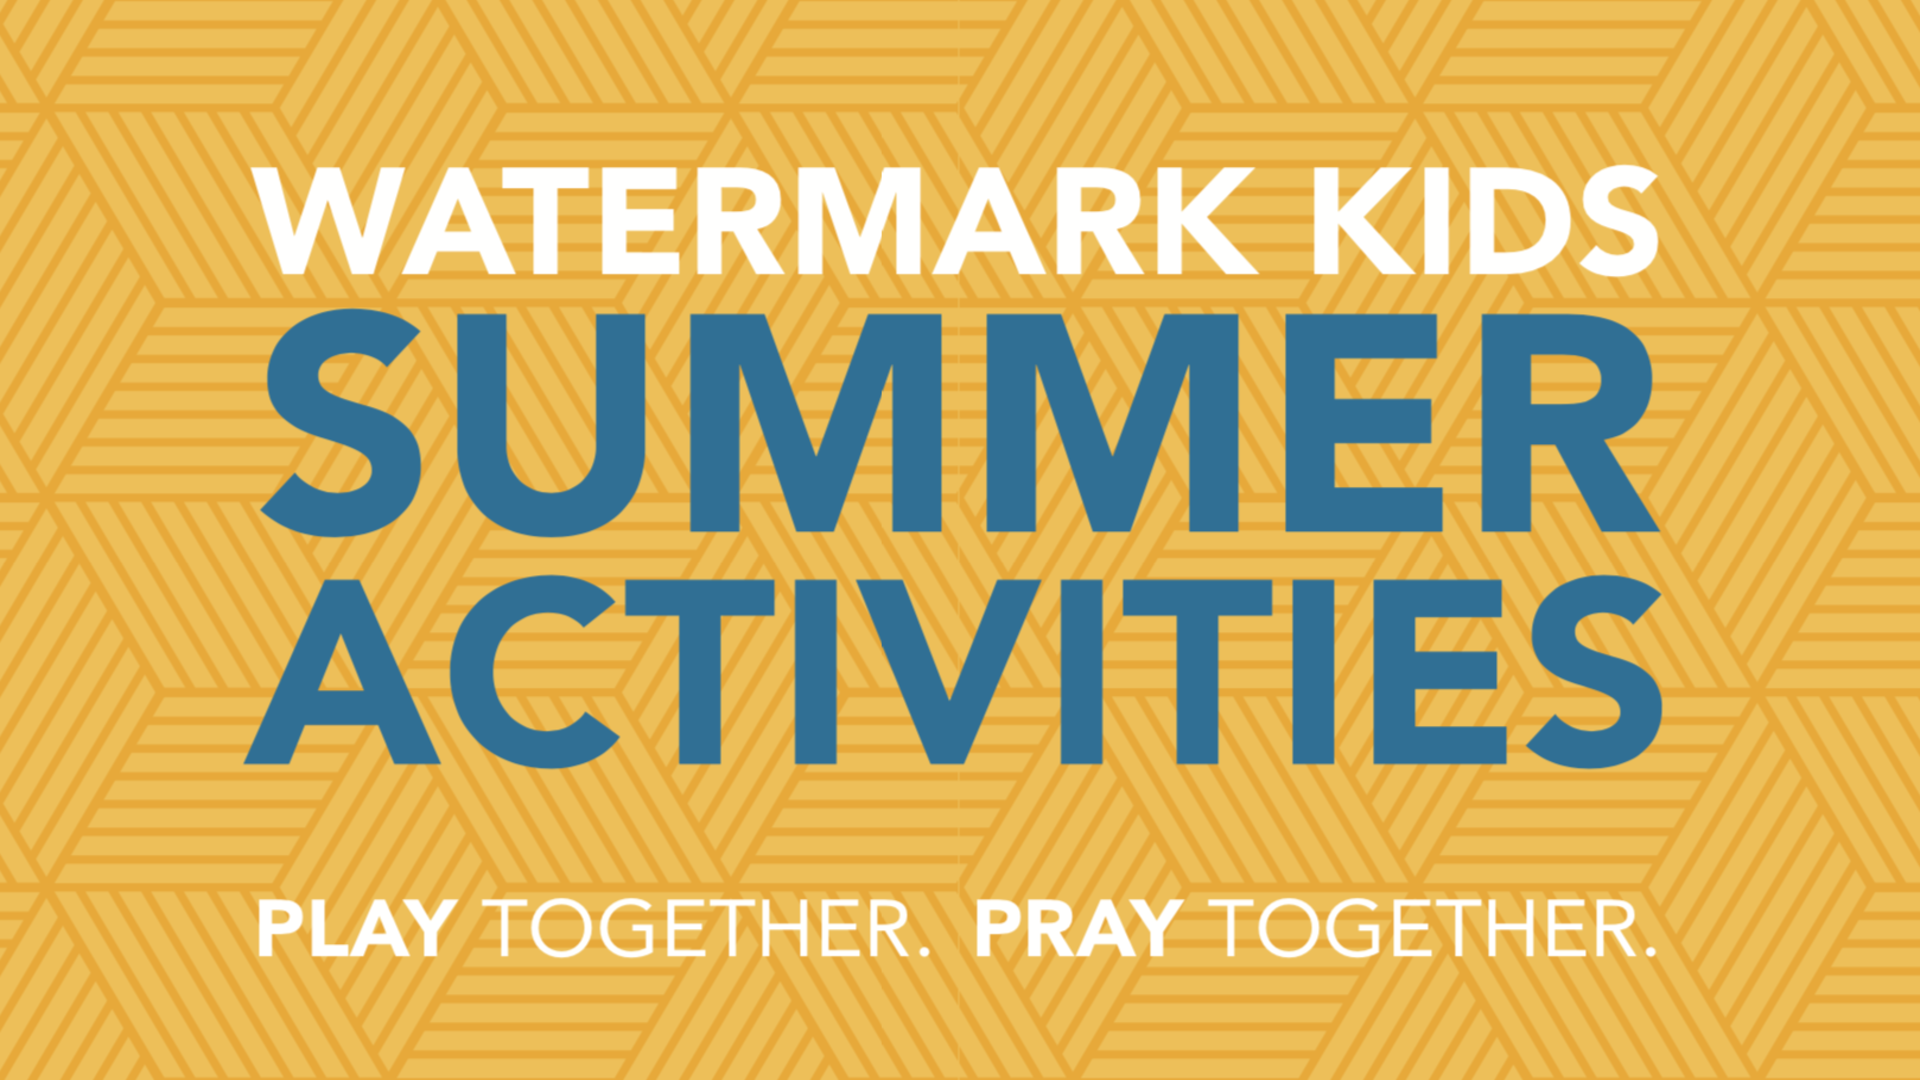 Watermark Kids Summer Activities Guide Hero Image